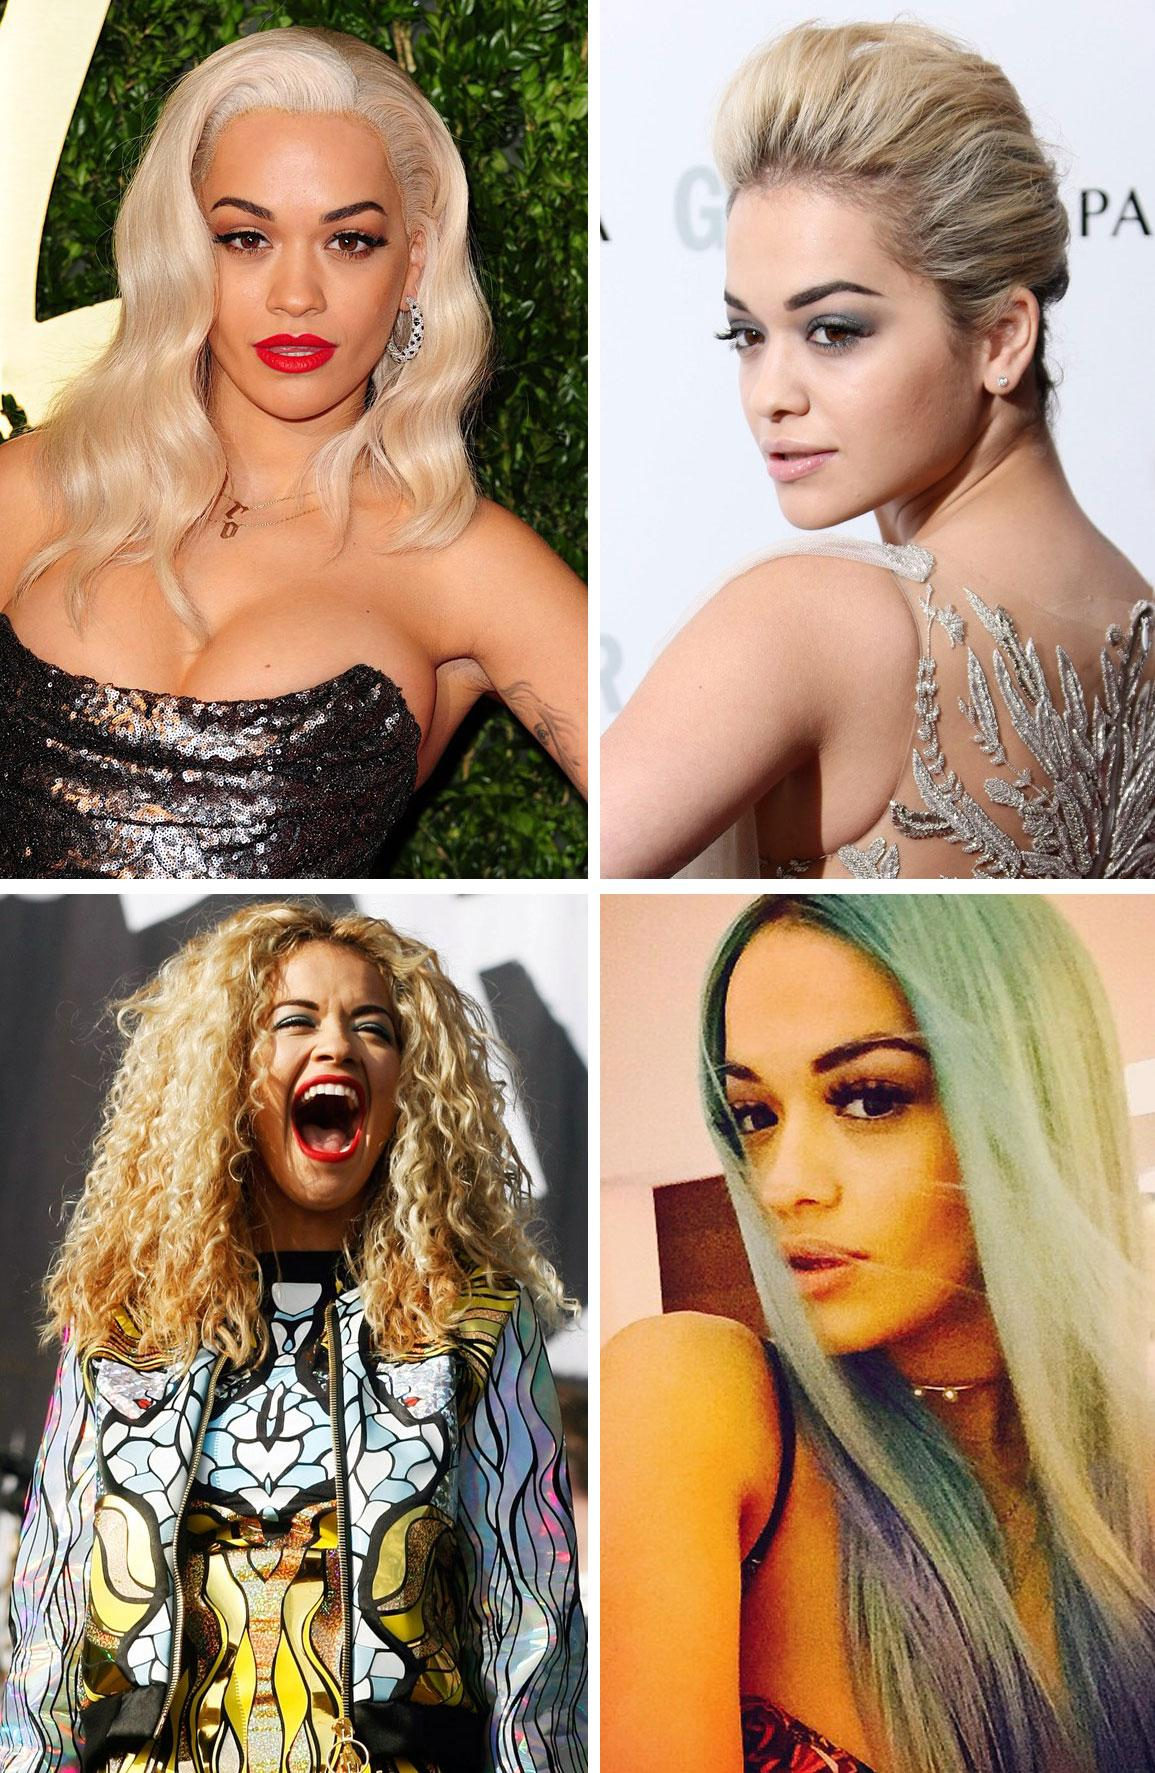 Rita Ora's life in 27 awesome hairstyles: http://t.co/812zCqzsdp http://t.co/iH3AsqEdul